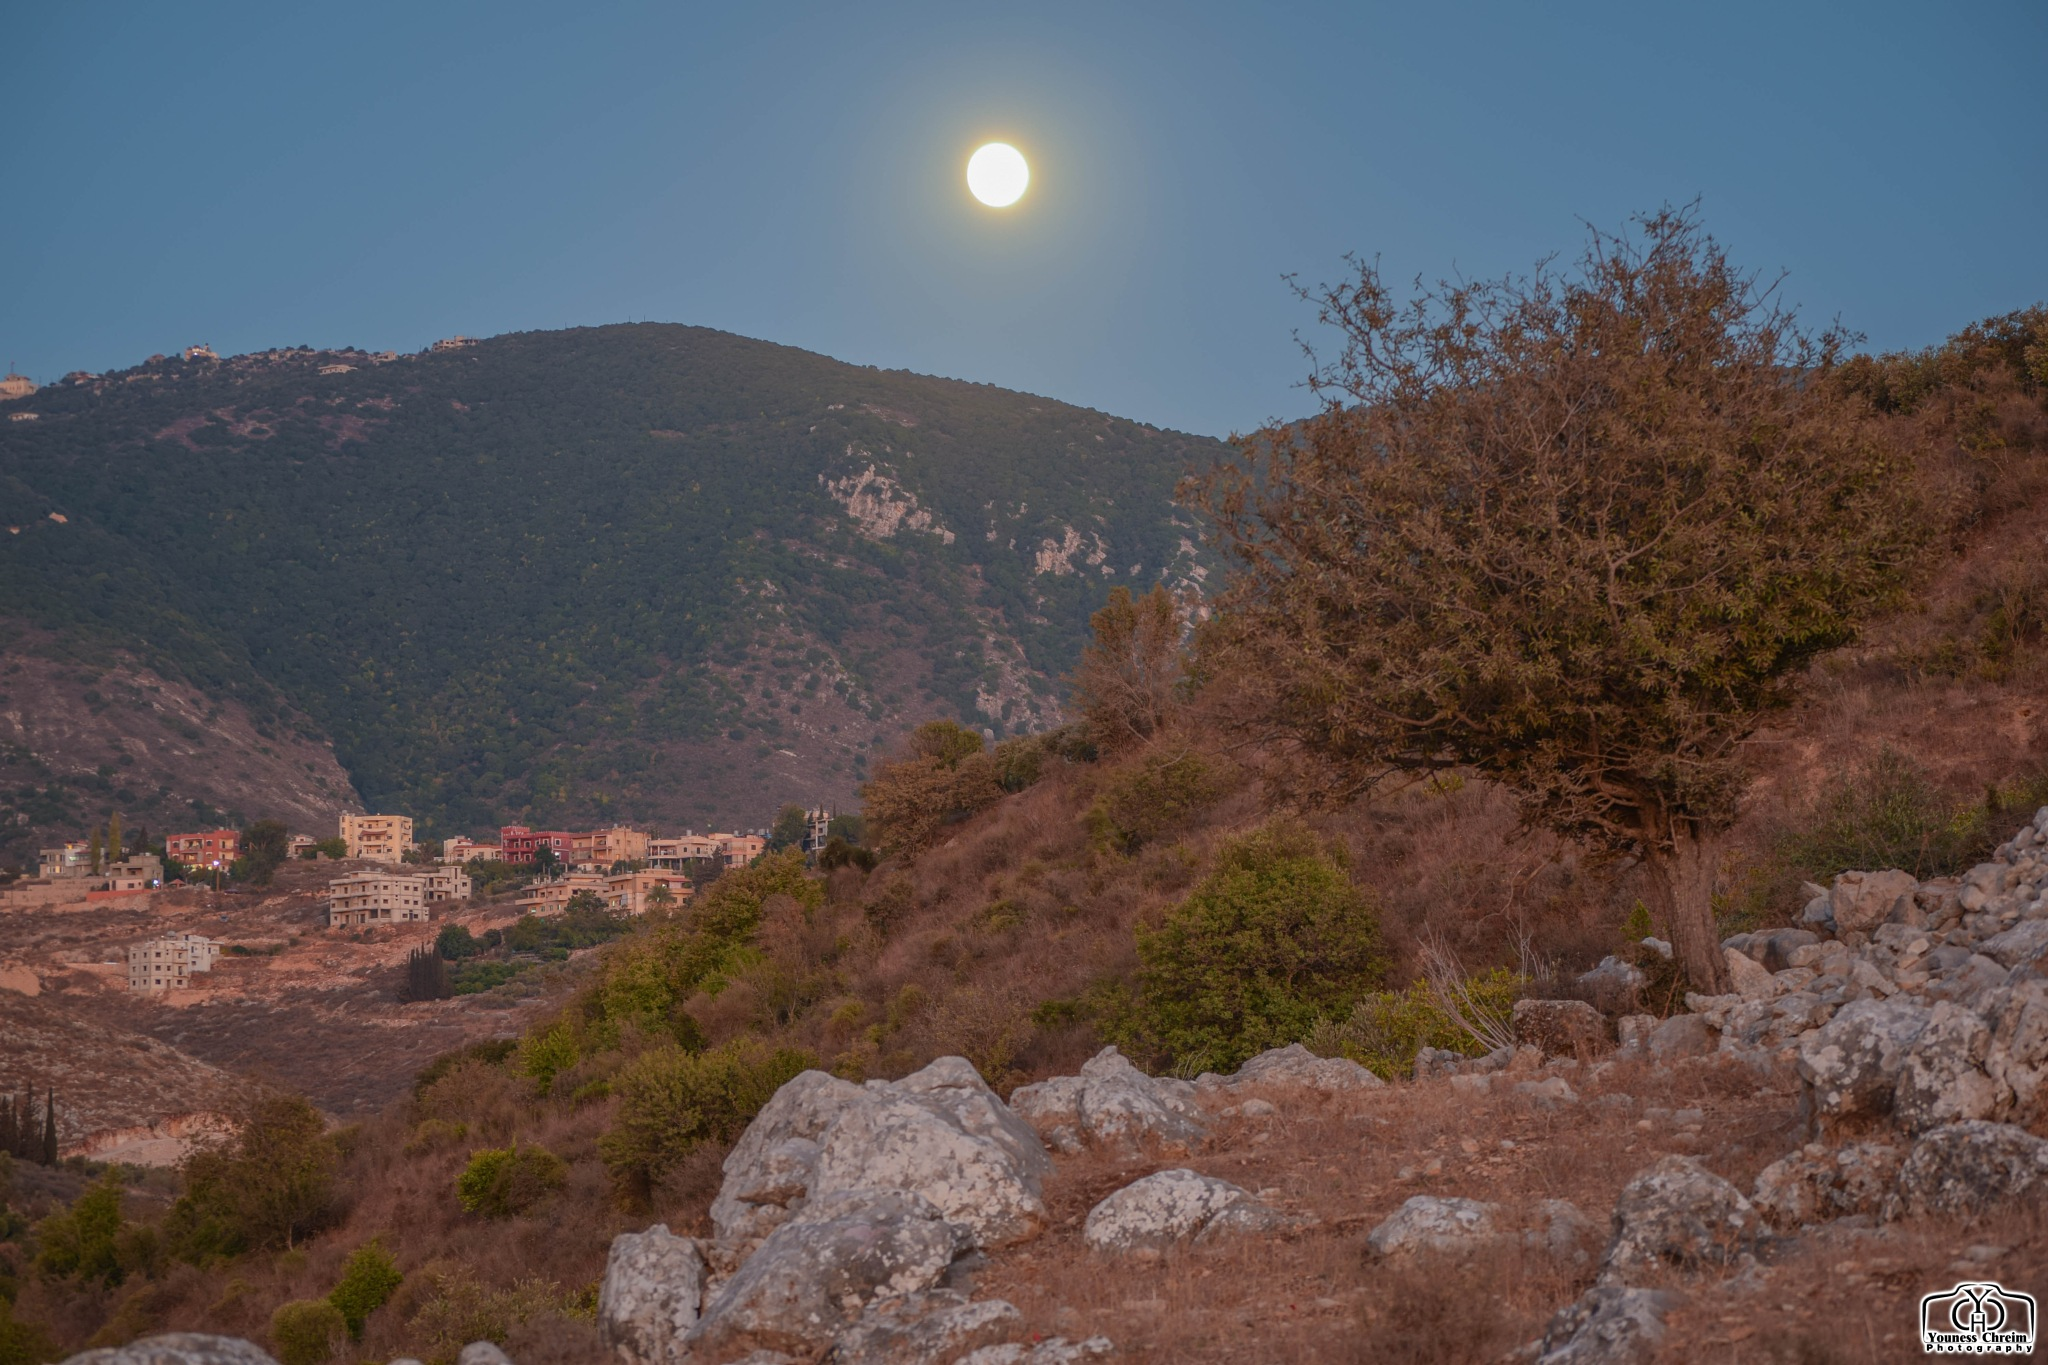 Moon rise Lebanon by Youness Chreim